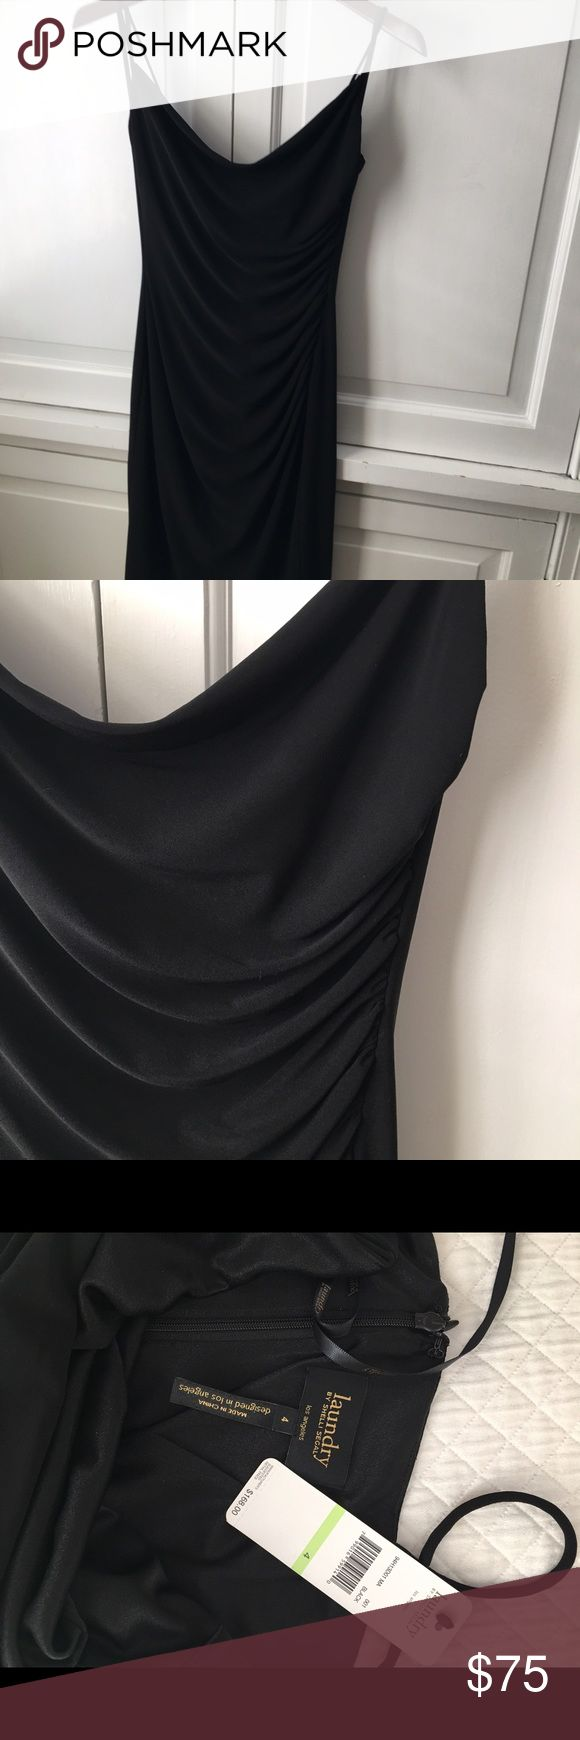 Very sexy and comfortable black laundry dress Perfect date night or wedding black laundry dress. Laundry by Shelli Segal Dresses Midi